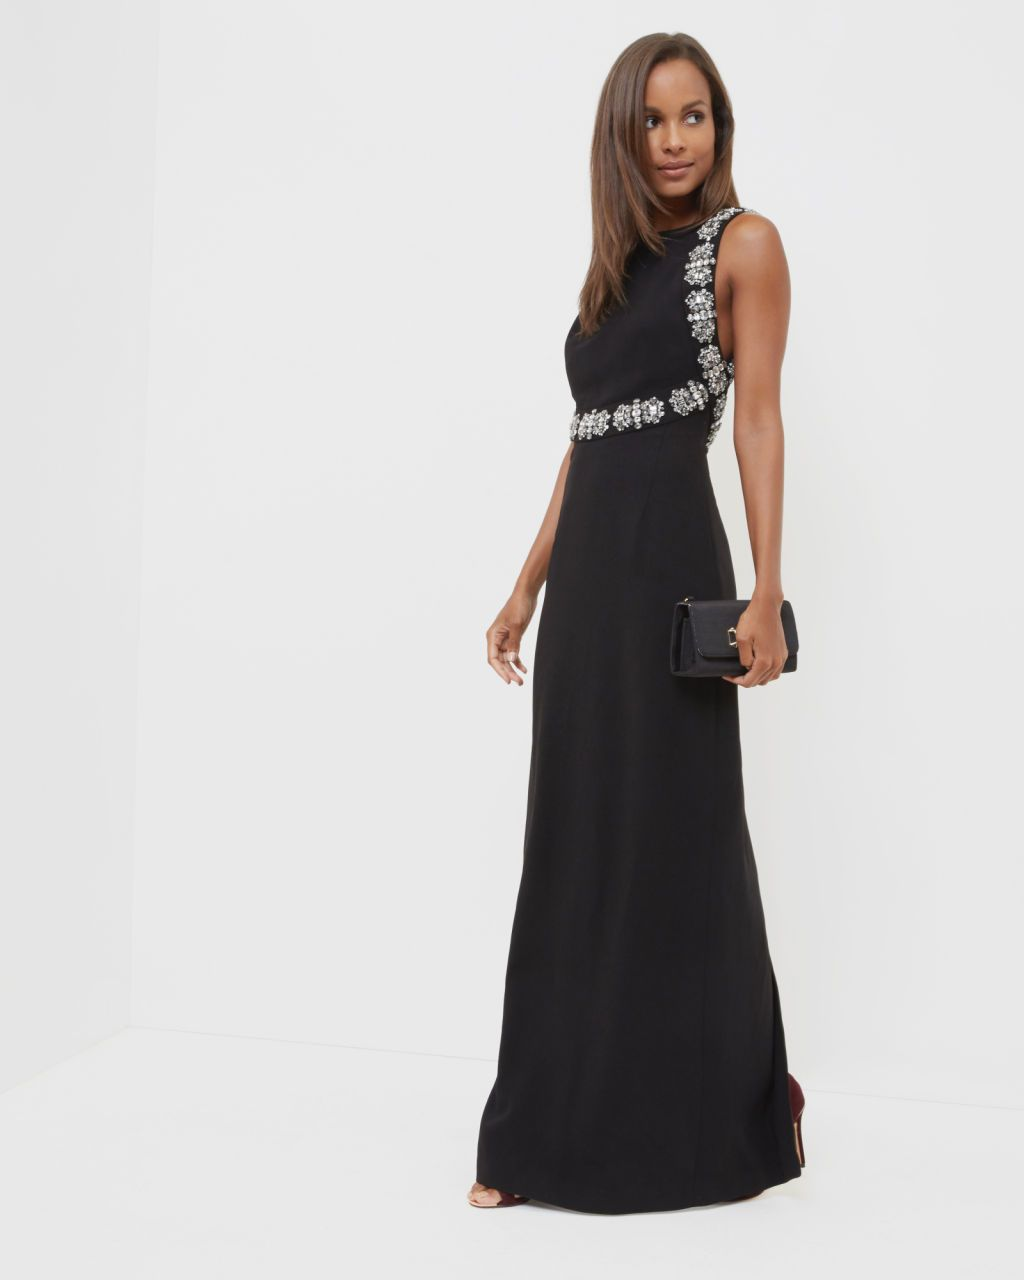 Embellished open back maxi dress - Black  e08344e34